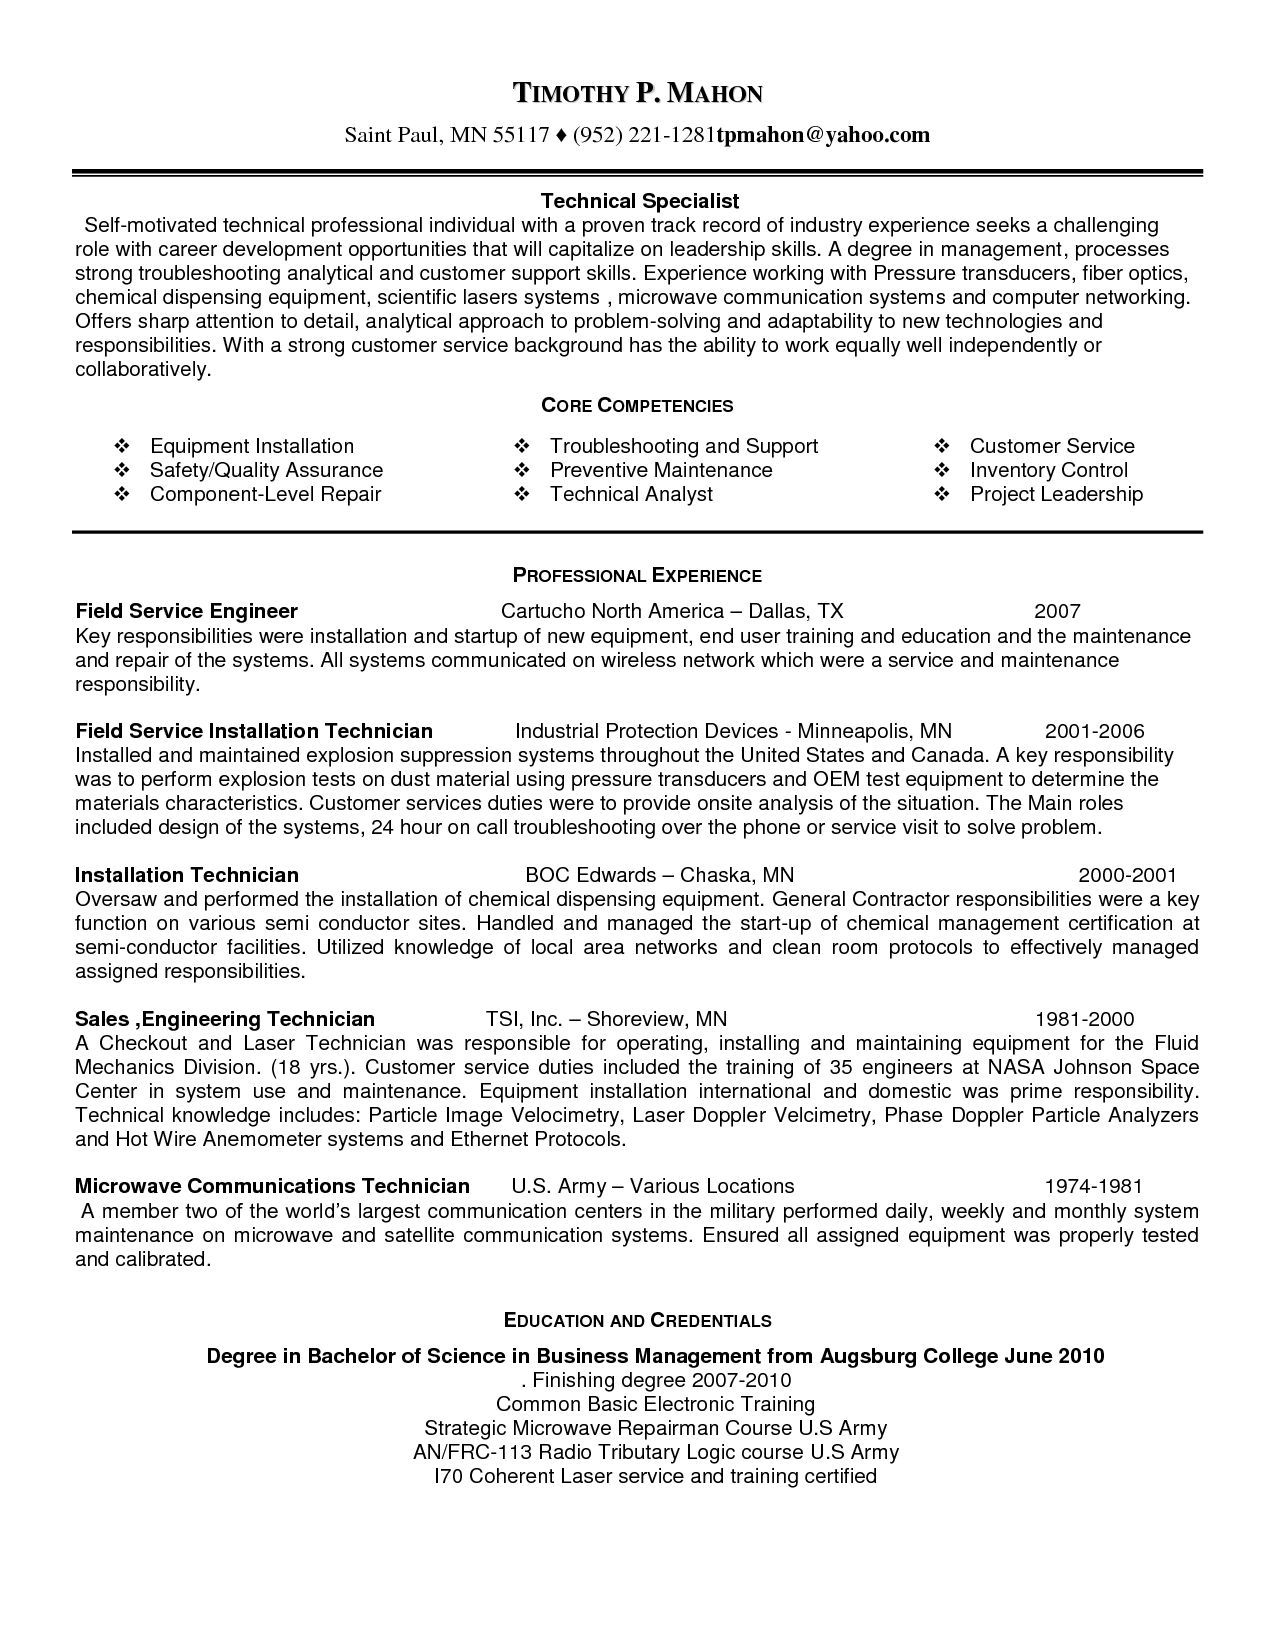 Auto Mechanic Resume Sample Fair Sle Resume For Auto Mechanic 28 Images Car Mechanics Resume Sales .